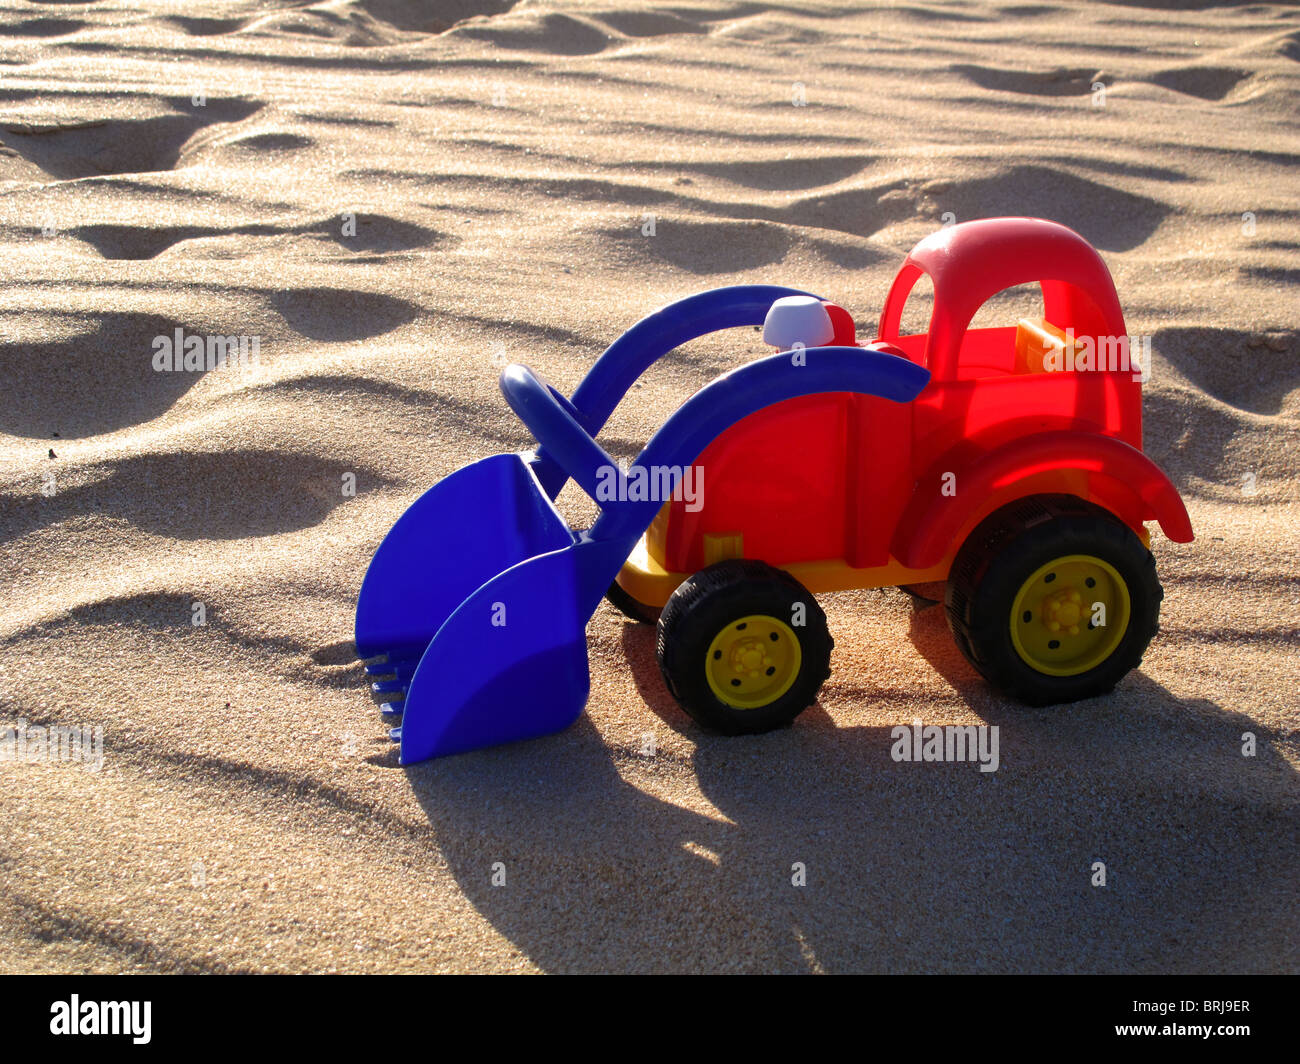 Brightly coloured plastic toy truck on sandy beach - Stock Image